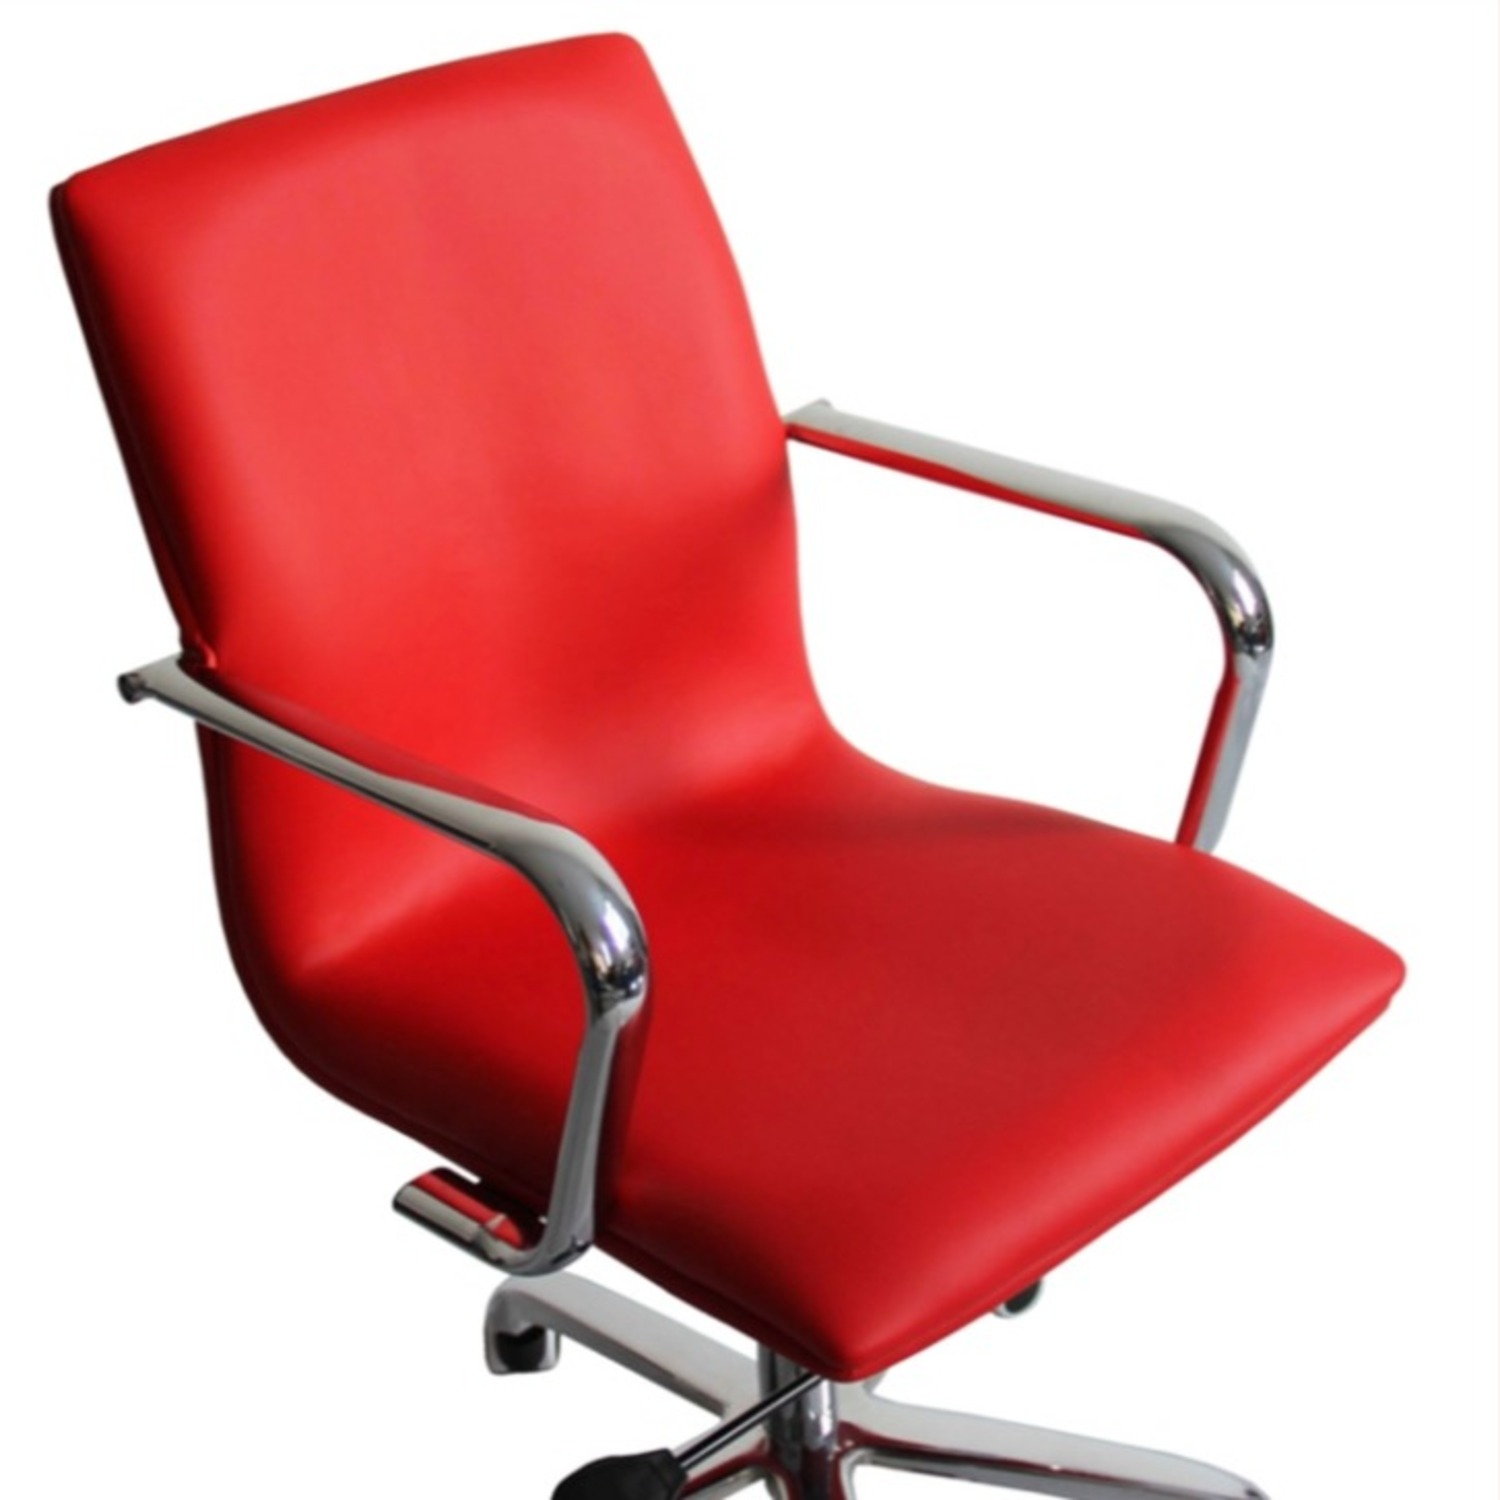 Office Chair In Mid-Back Red Leatherette Finish - image-1